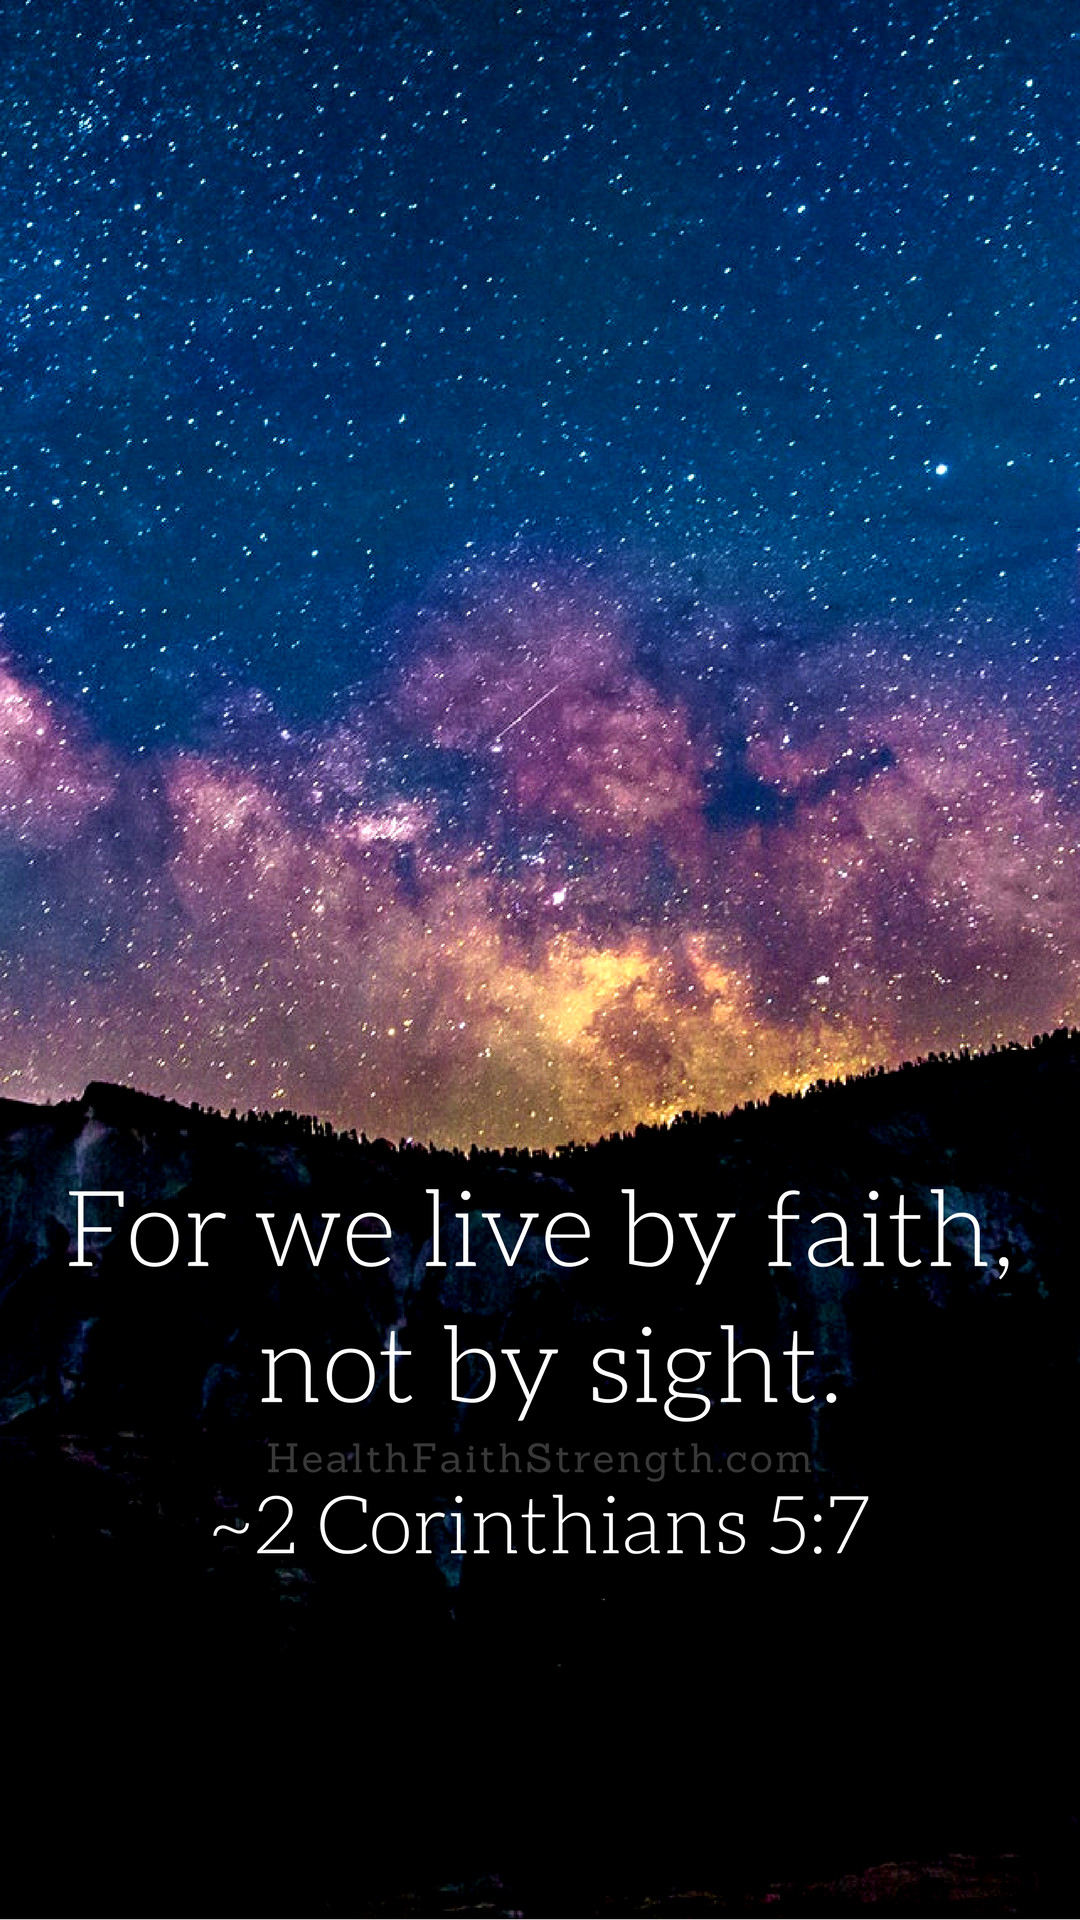 Hd Christian Quotes Wallpapers 1920x1080 Bible Verse Wallpapers 52 Pictures